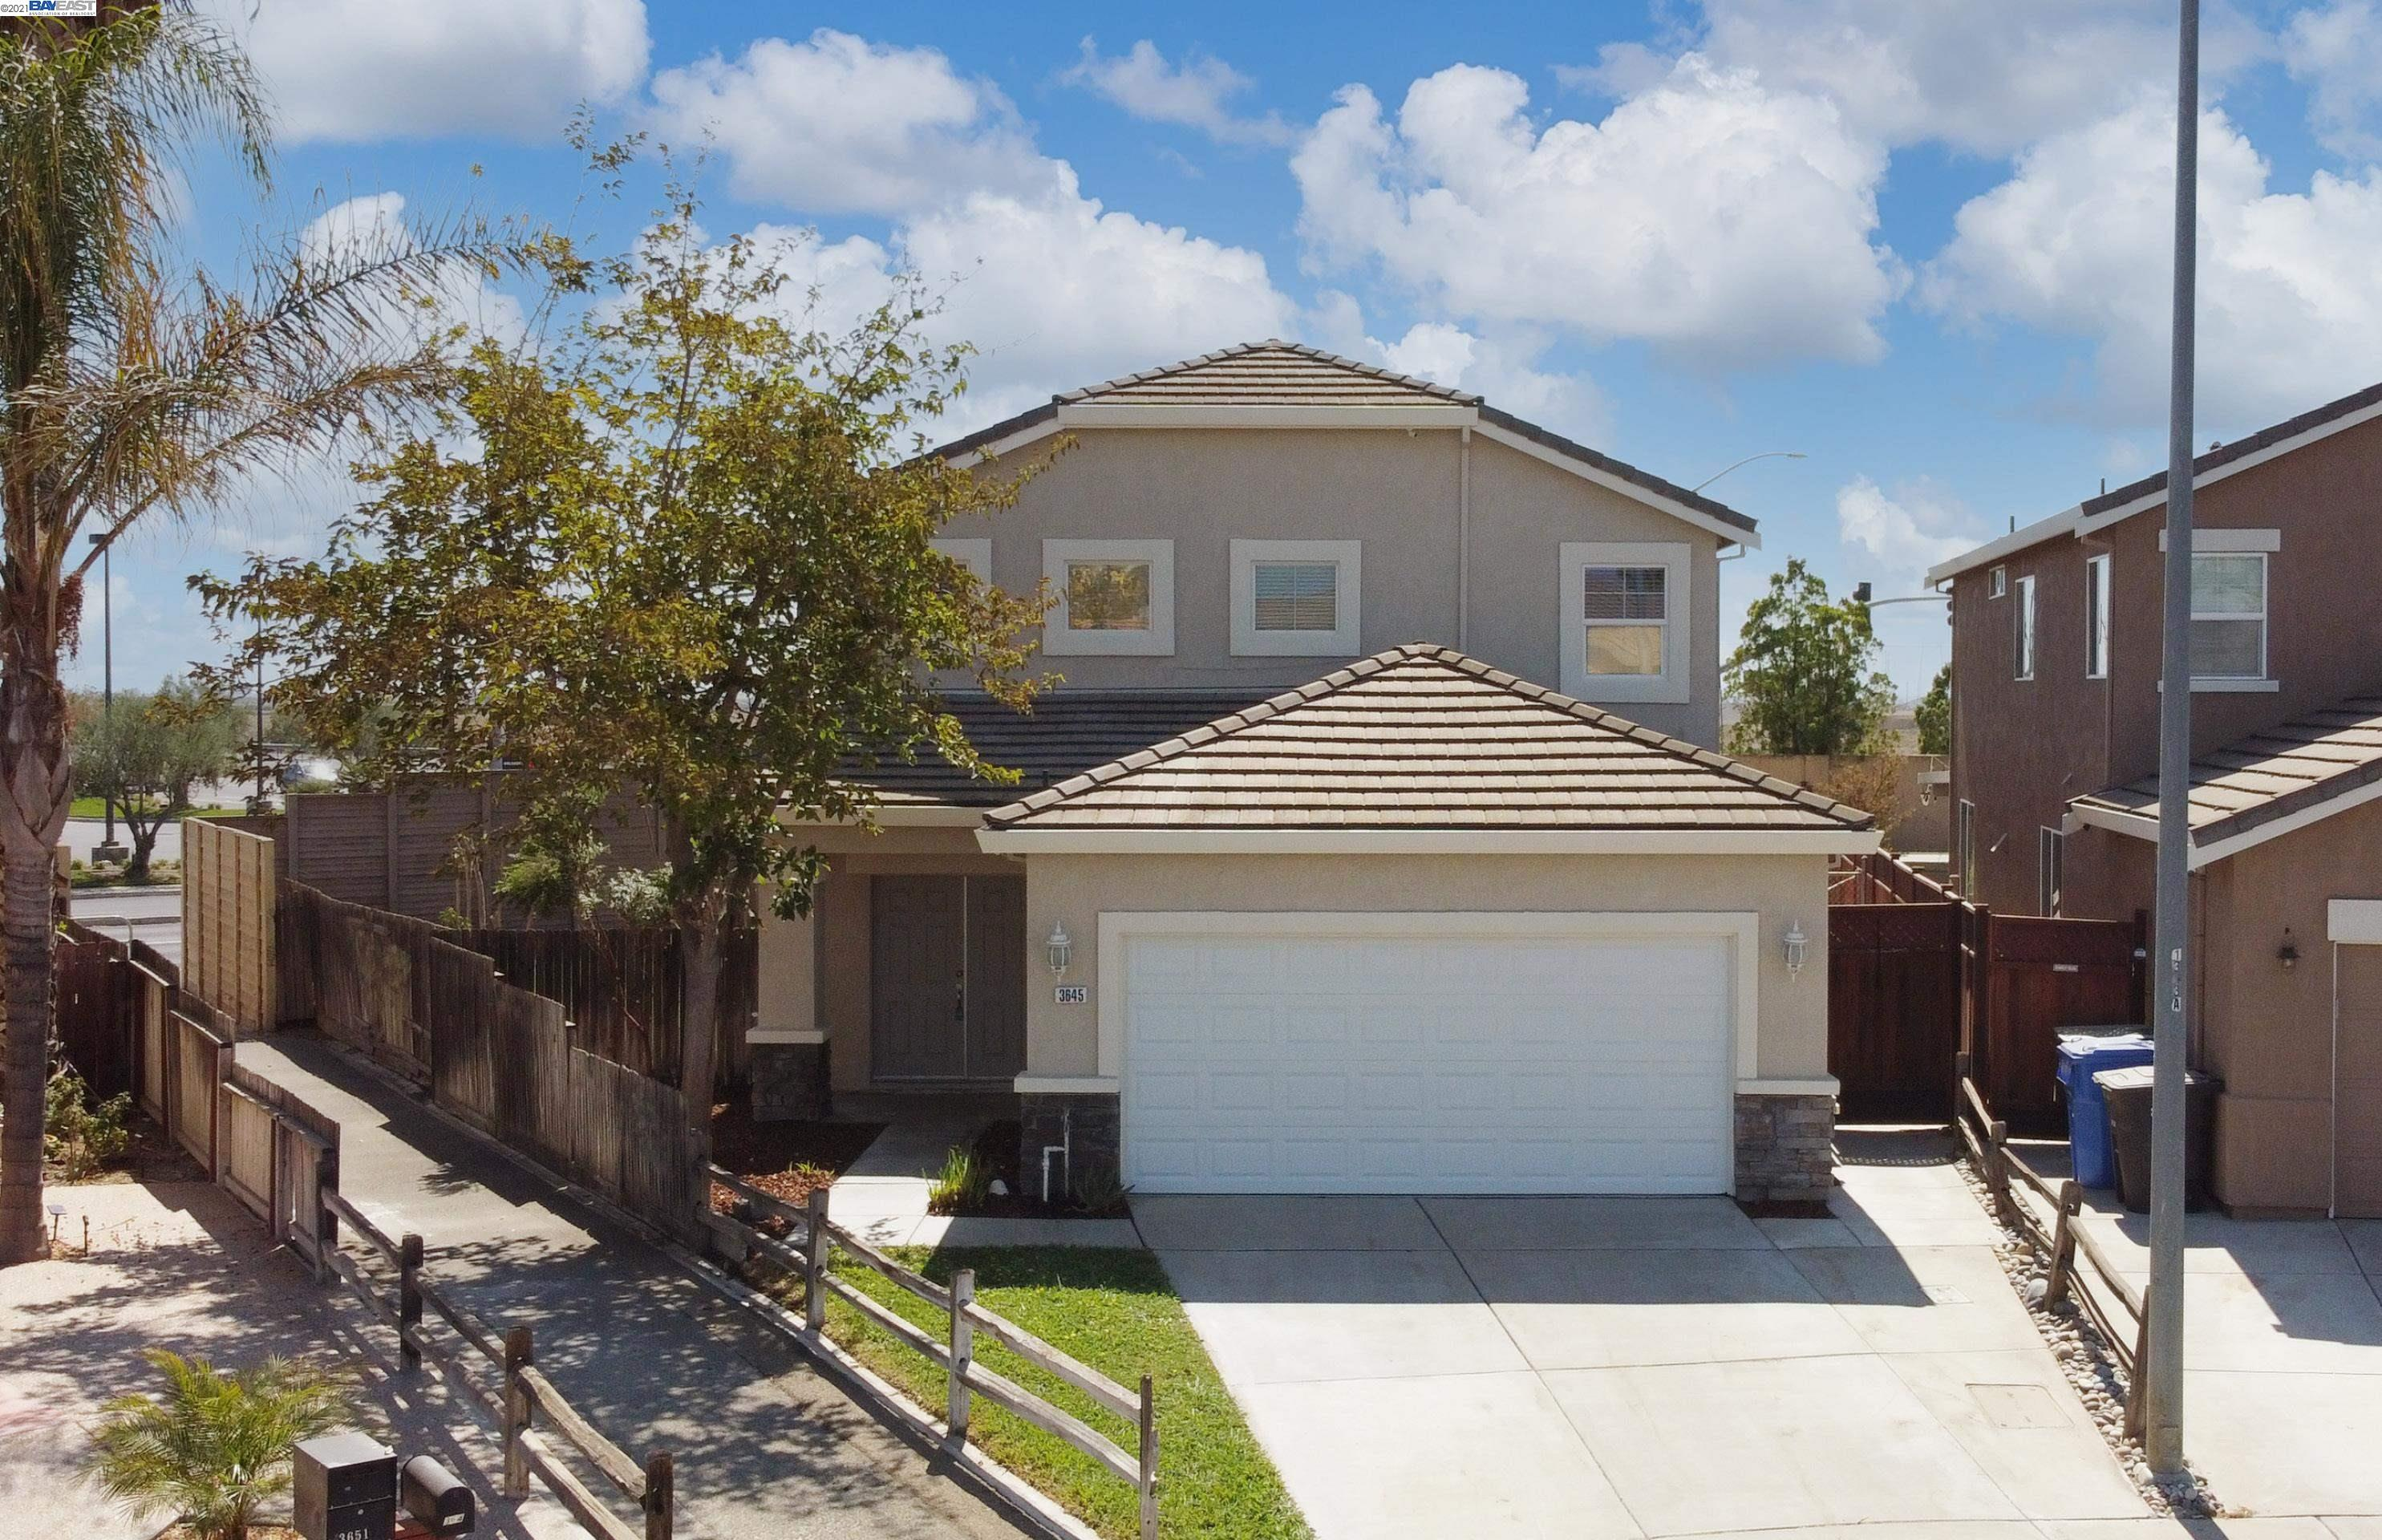 3645 Yacht Dr, DISCOVERY BAY, CA 94505